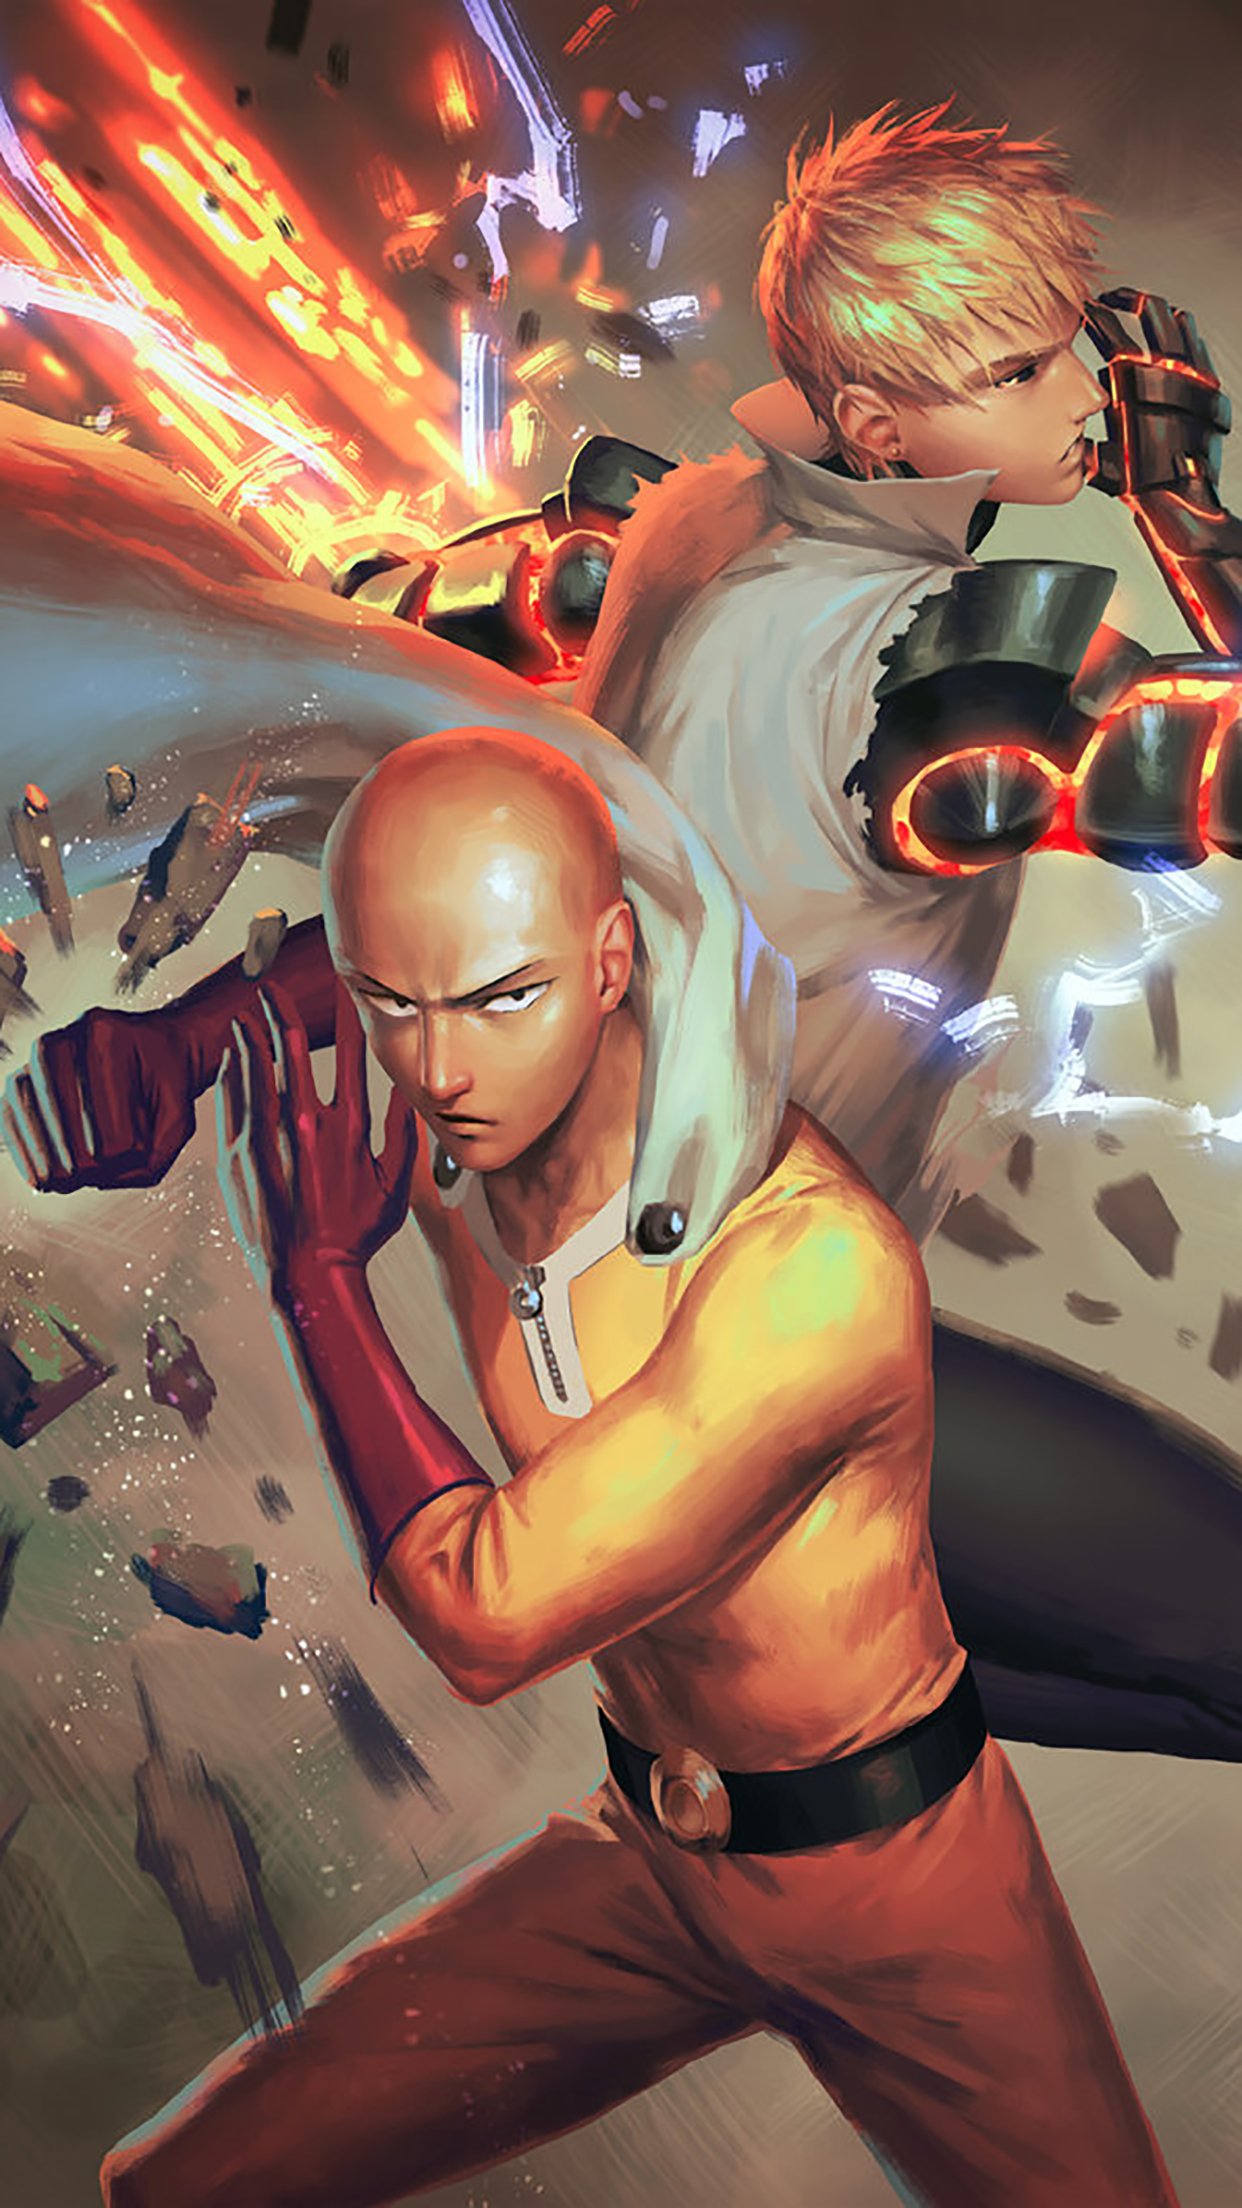 One Punch Man Fight 3Wallpapers iPhone Parallax 3Wallpapers : notre sélection de fonds décran du 22/01/2017